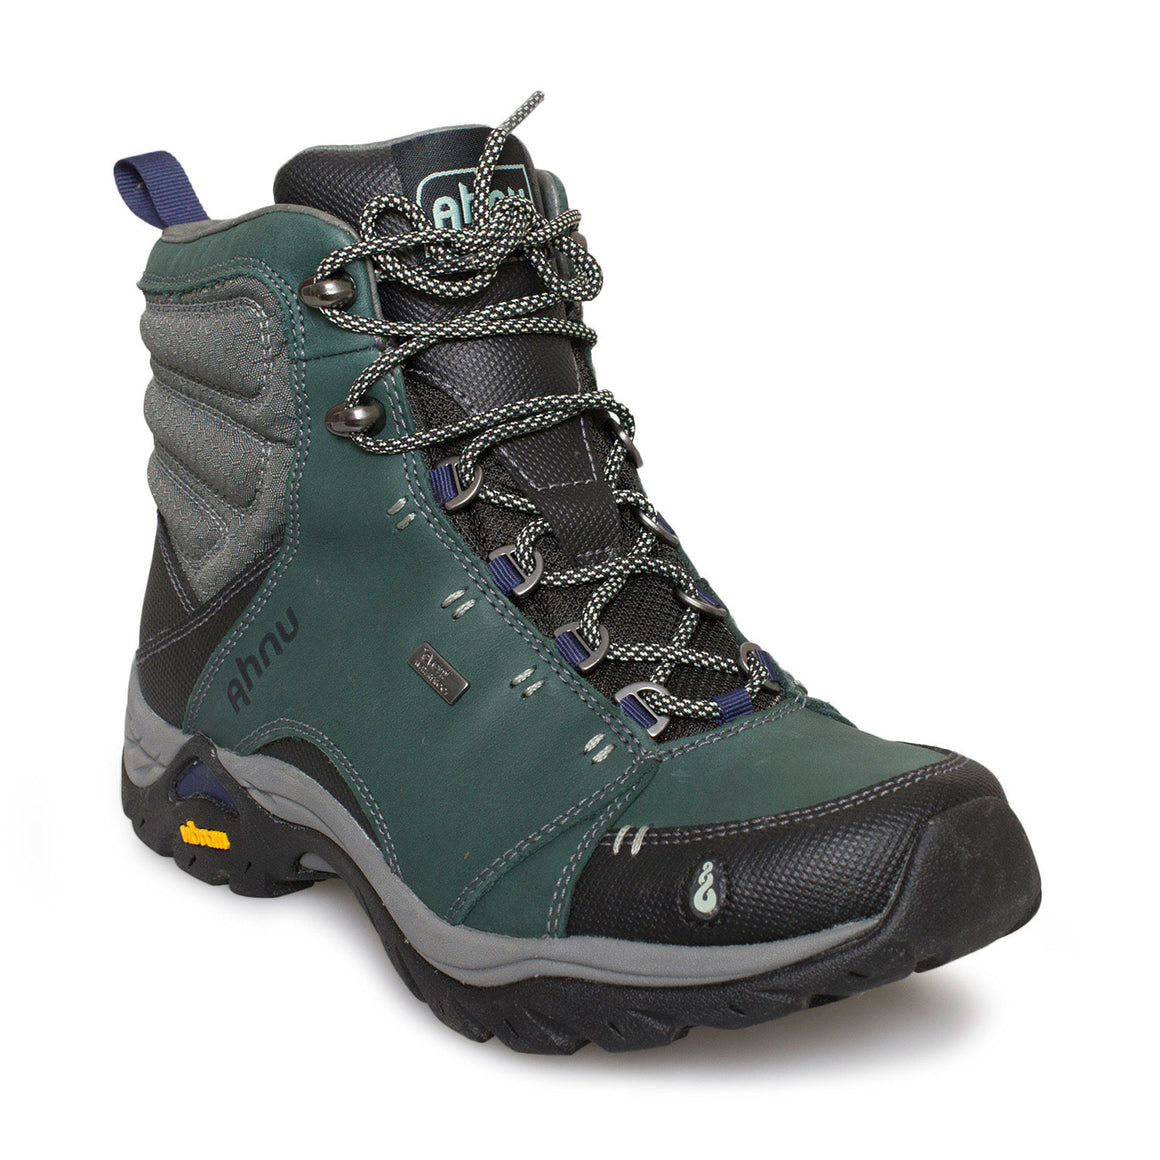 Ahnu Montara Muir Green Hiking Boots